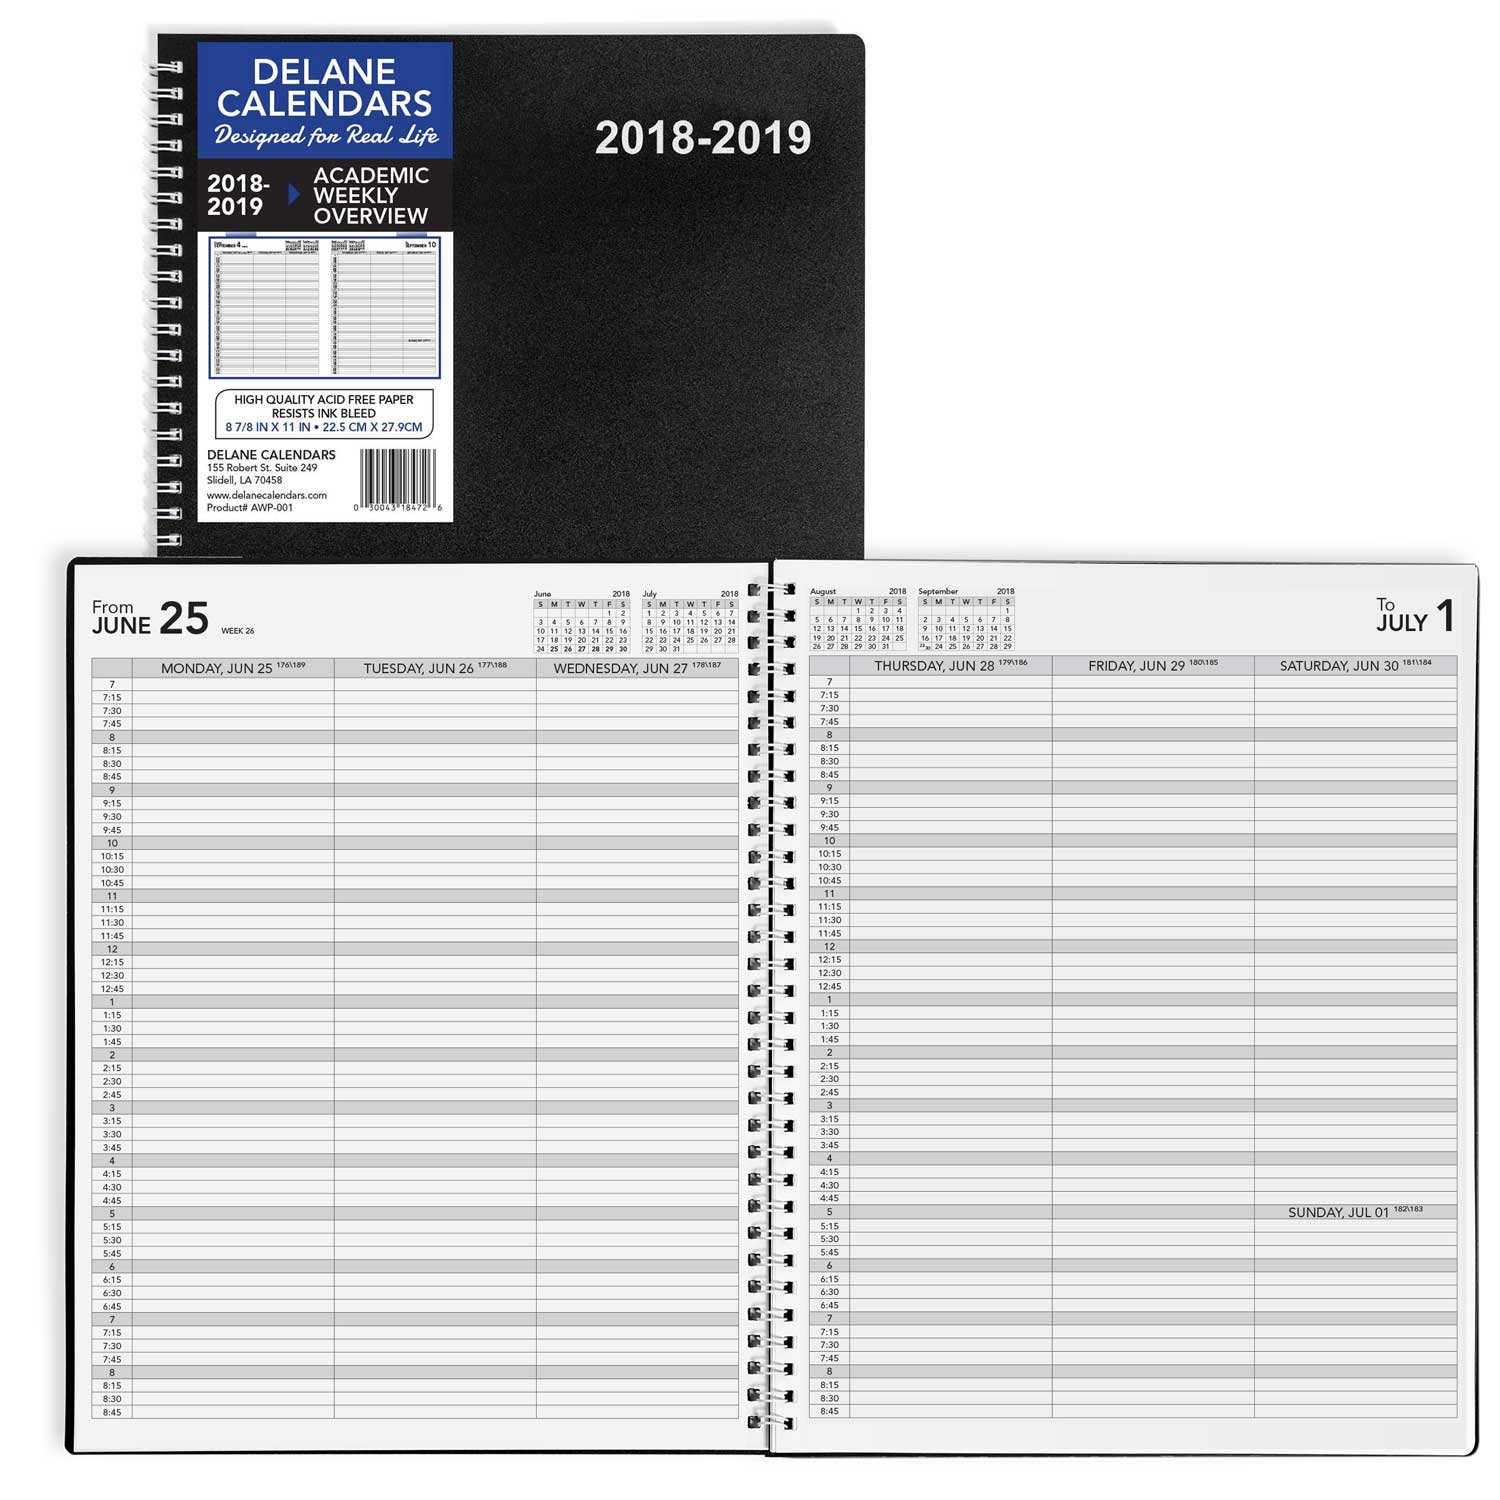 2018-2019 Academic Weekly Planner Appointment Book, 8.5 x 11 inches, Premium Paper, Daily Hourly Planner, Black